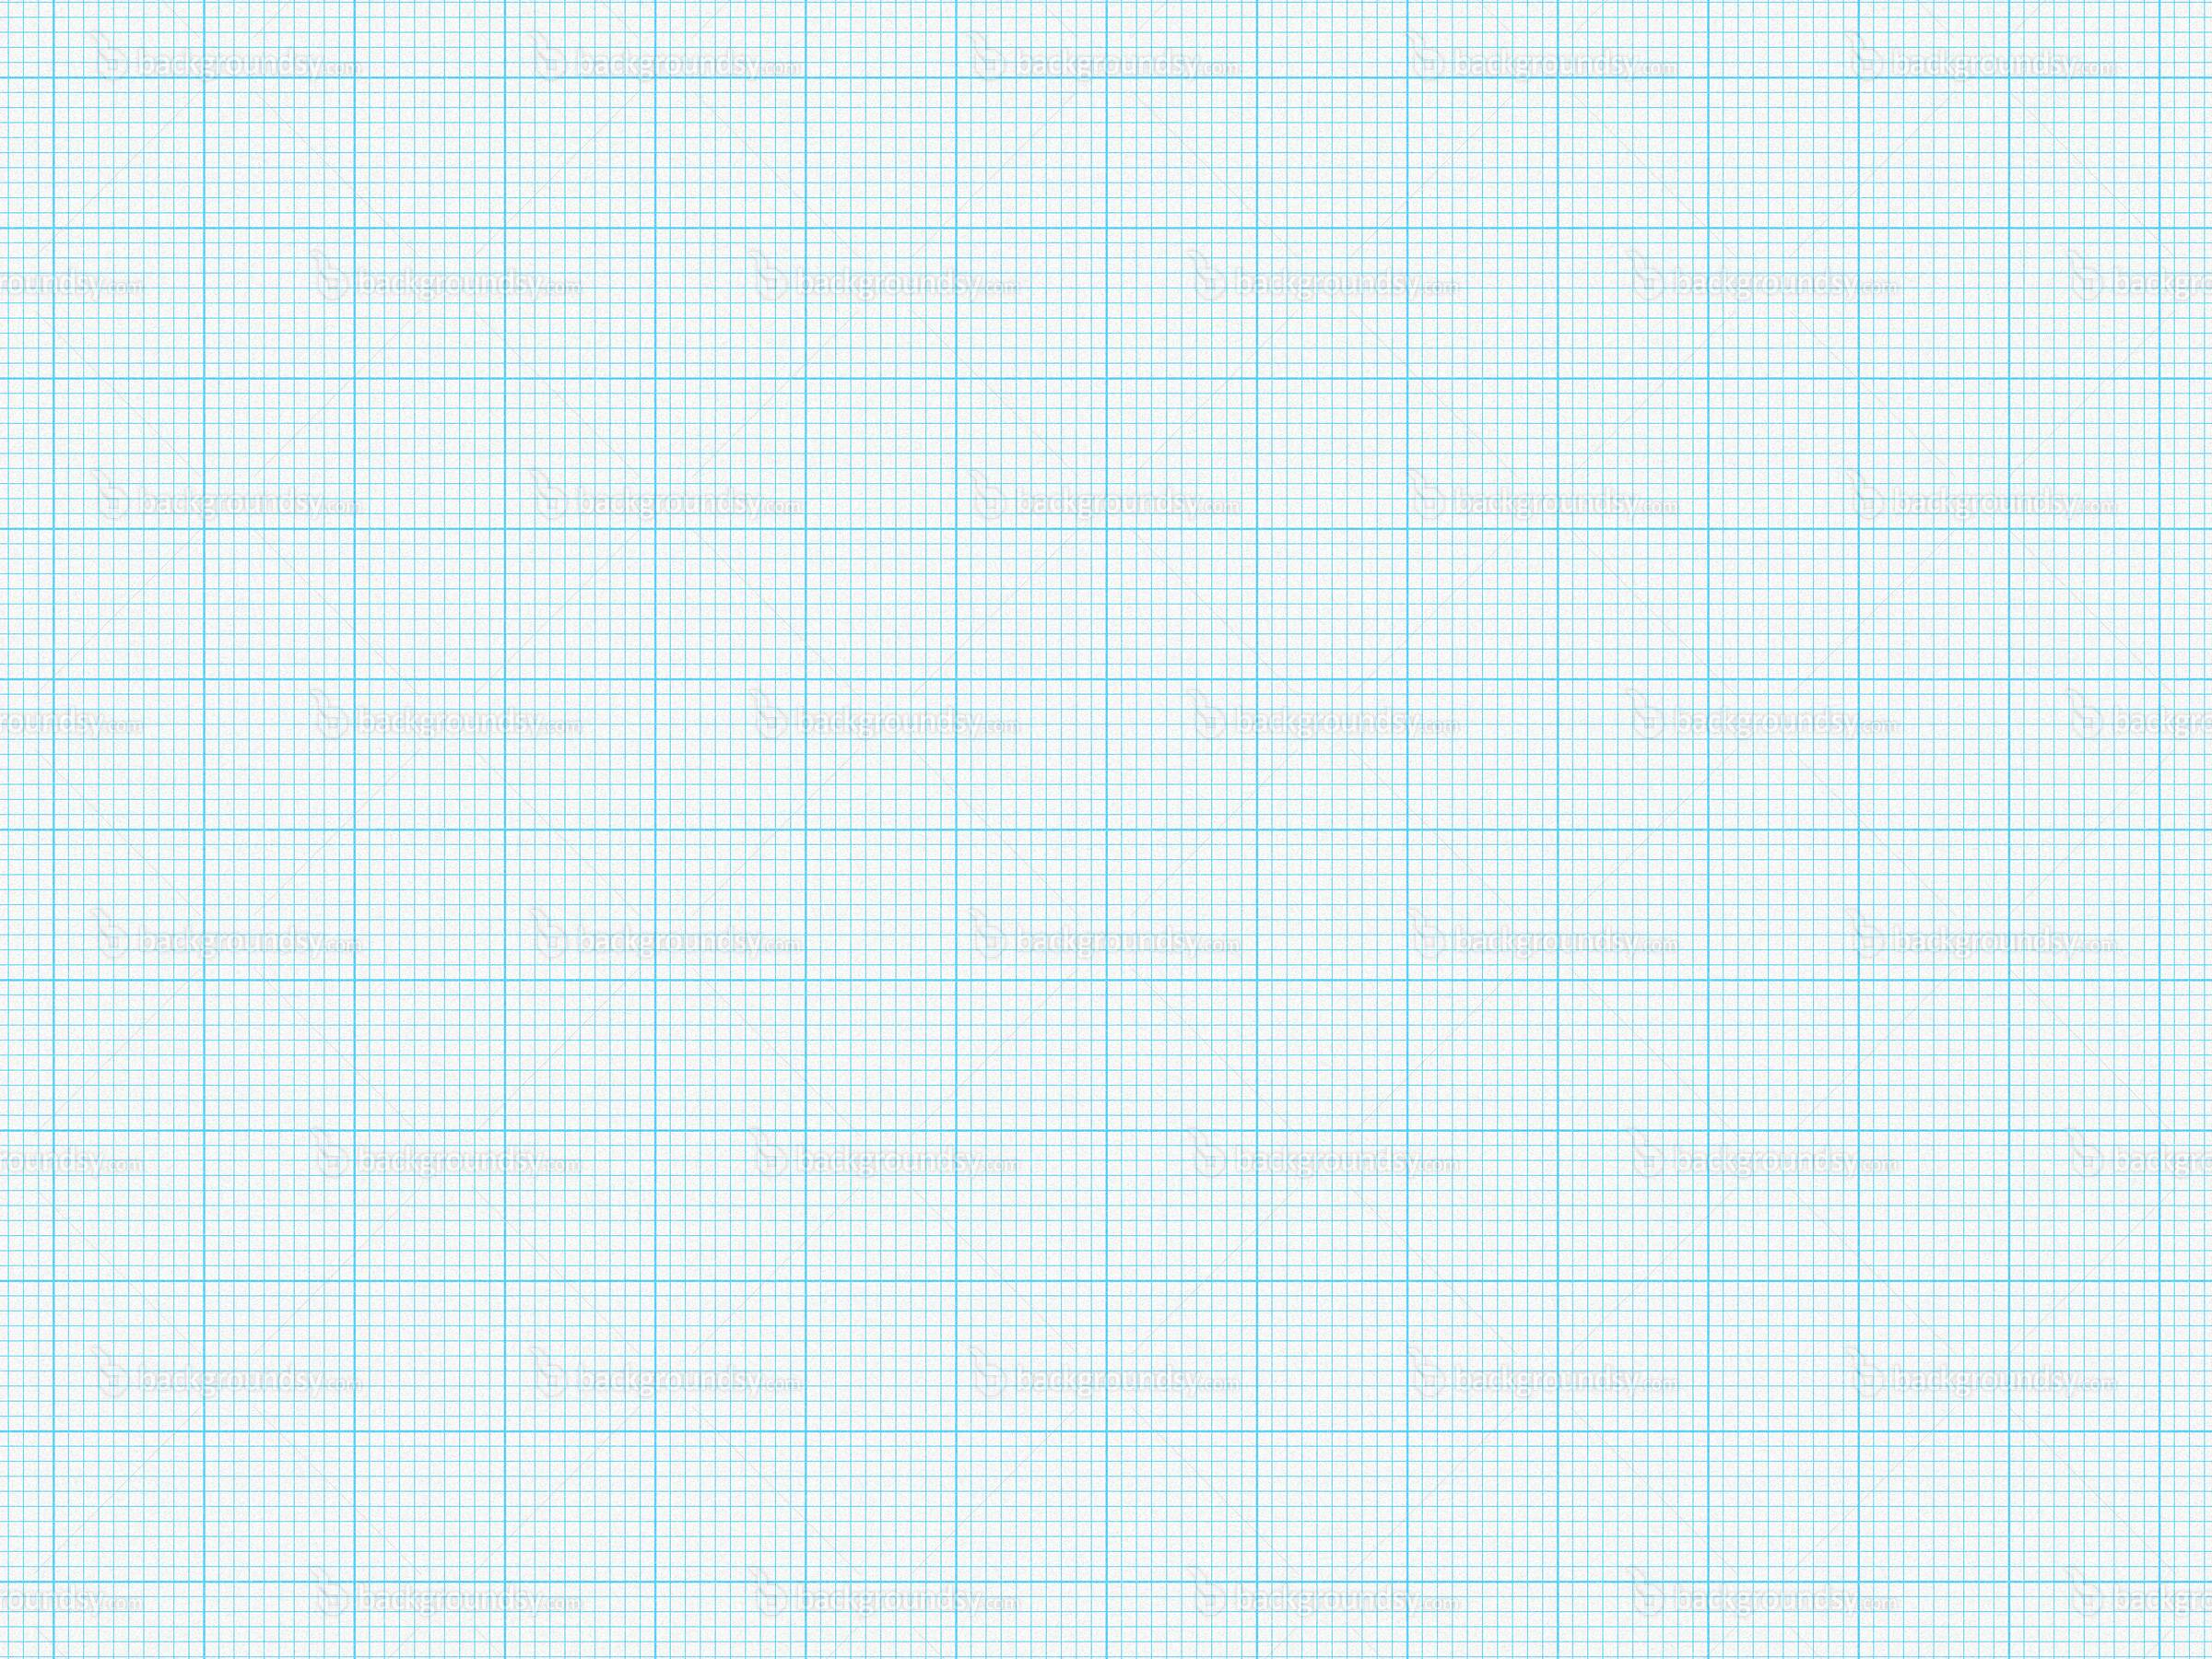 Blue Rectangular Graph Paper Wallpaper 1653x2337 px Free Download ...